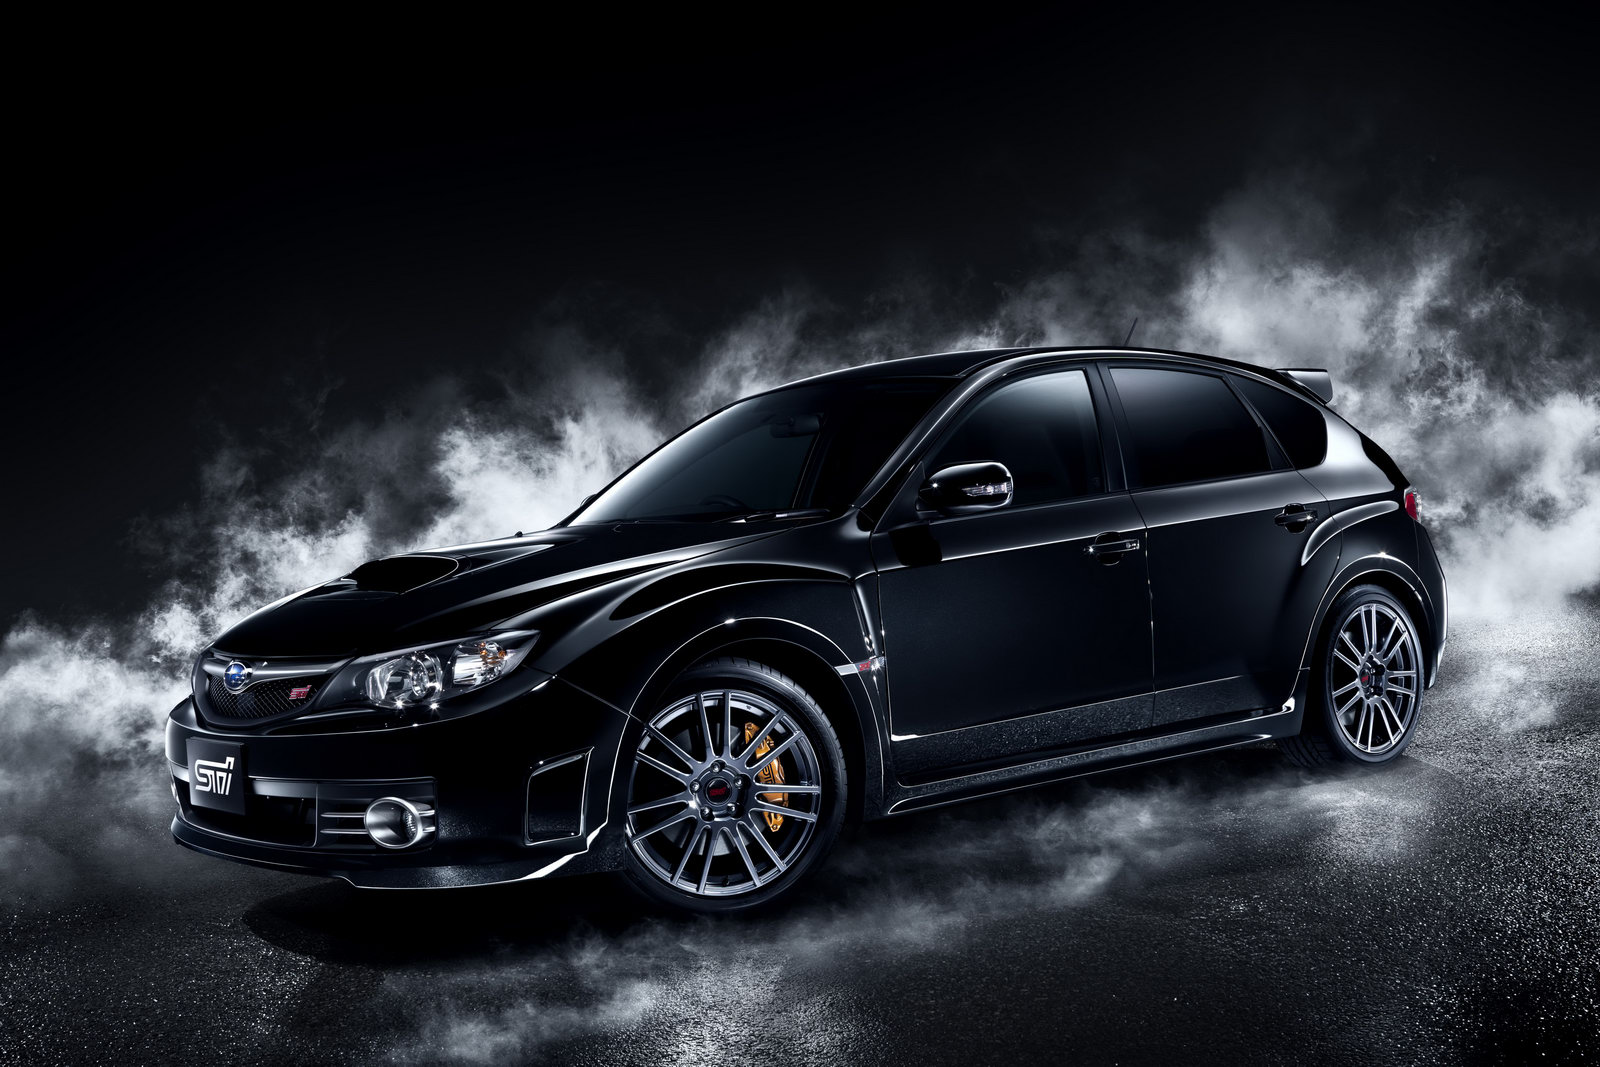 subaru impreza wrx 2011 hatchback. Black Bedroom Furniture Sets. Home Design Ideas